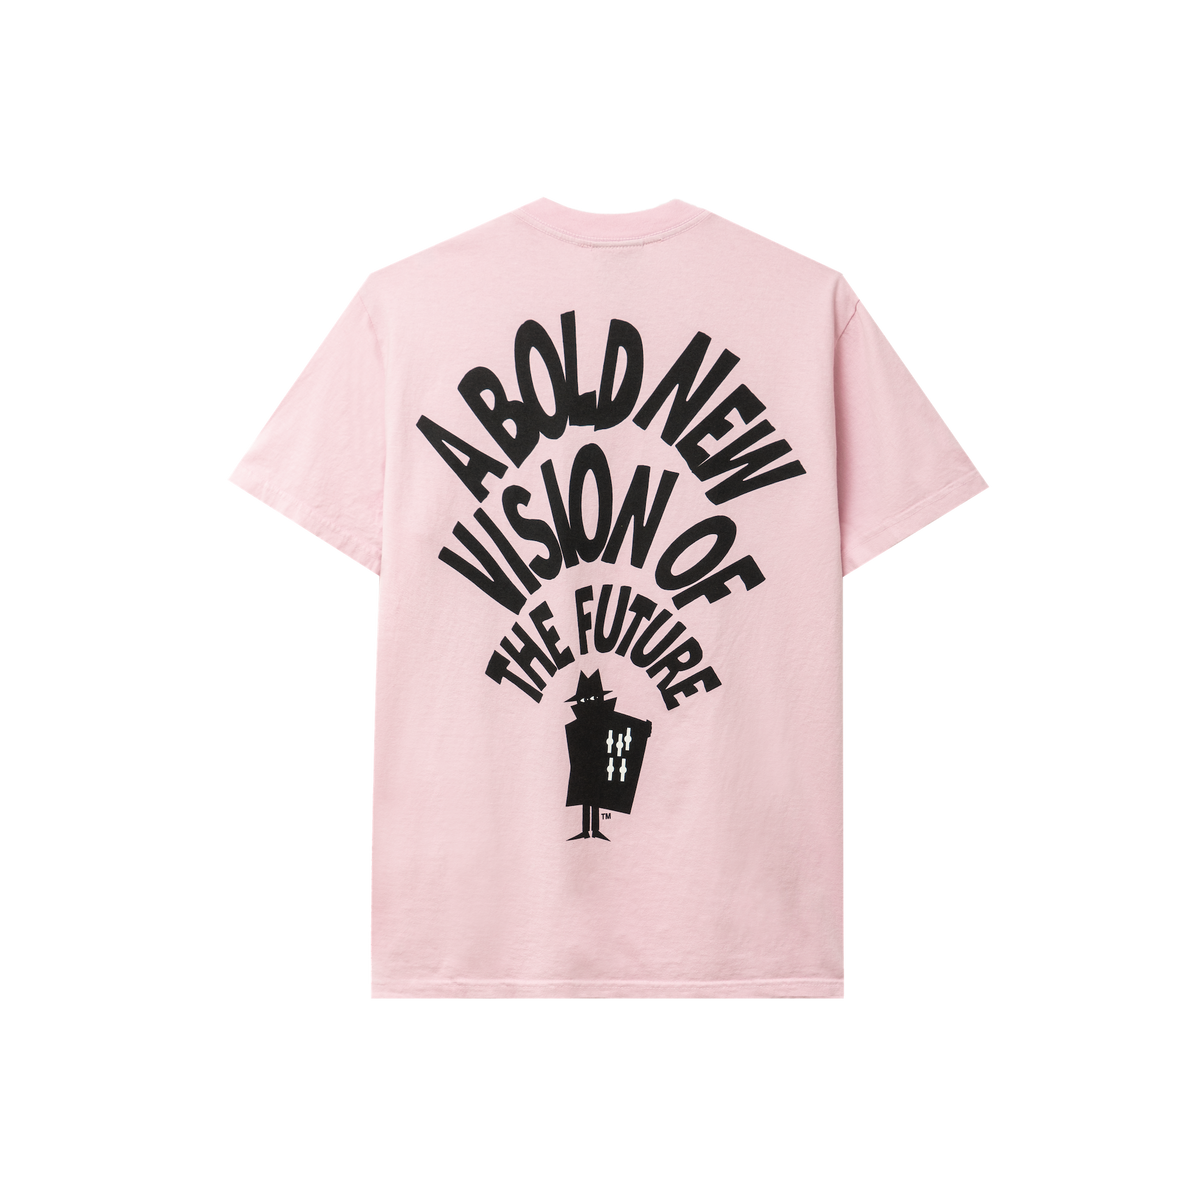 BOLD NEW VISION SS TEE